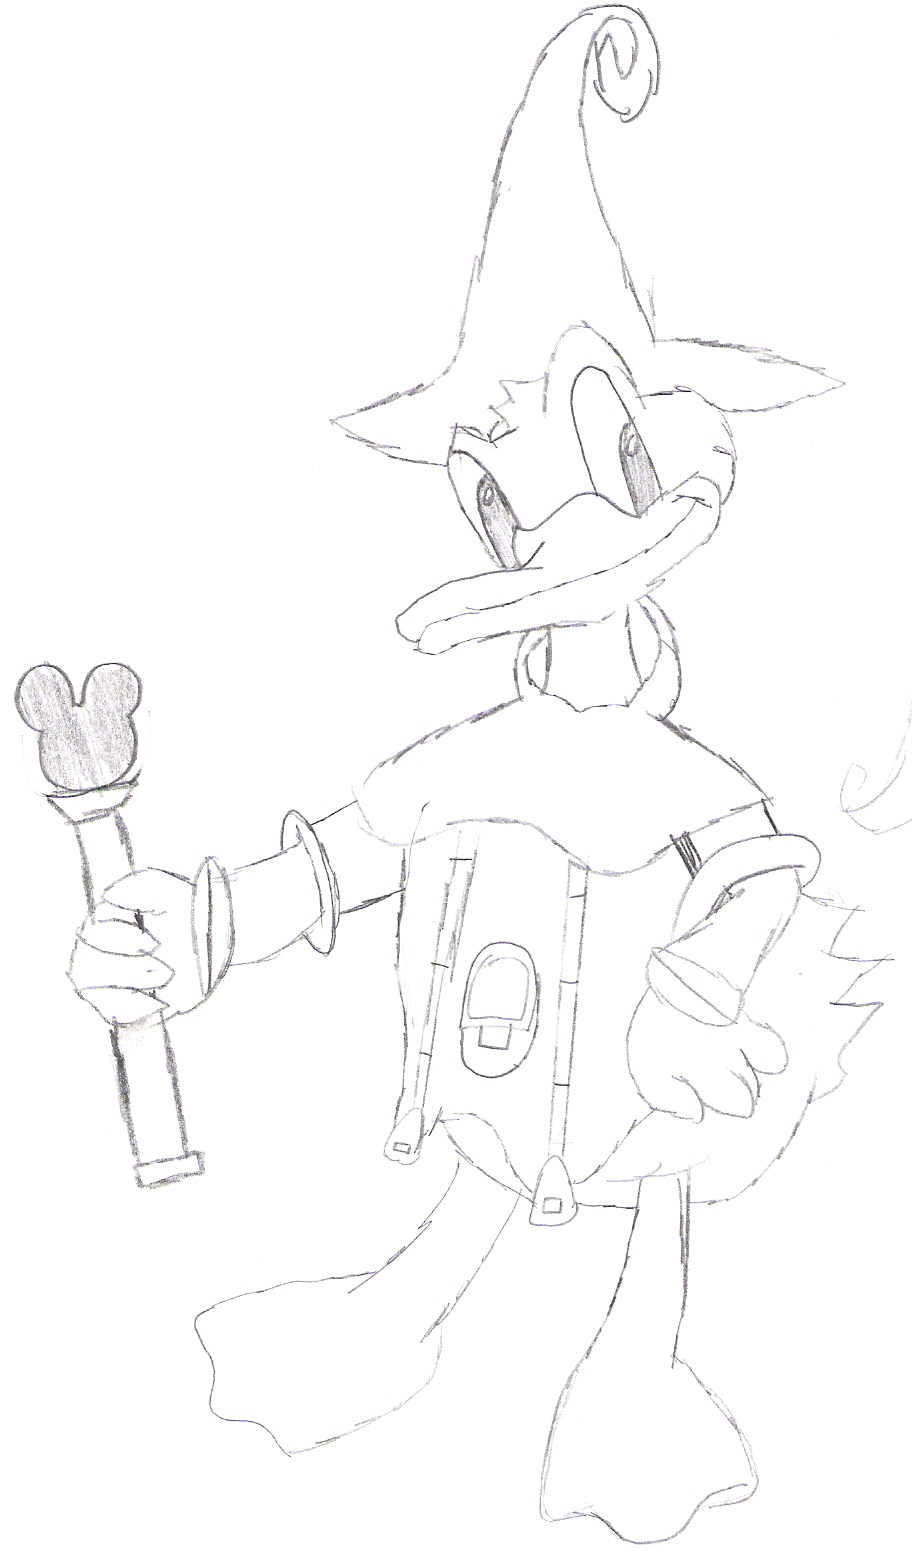 donald sketch by sora_strife